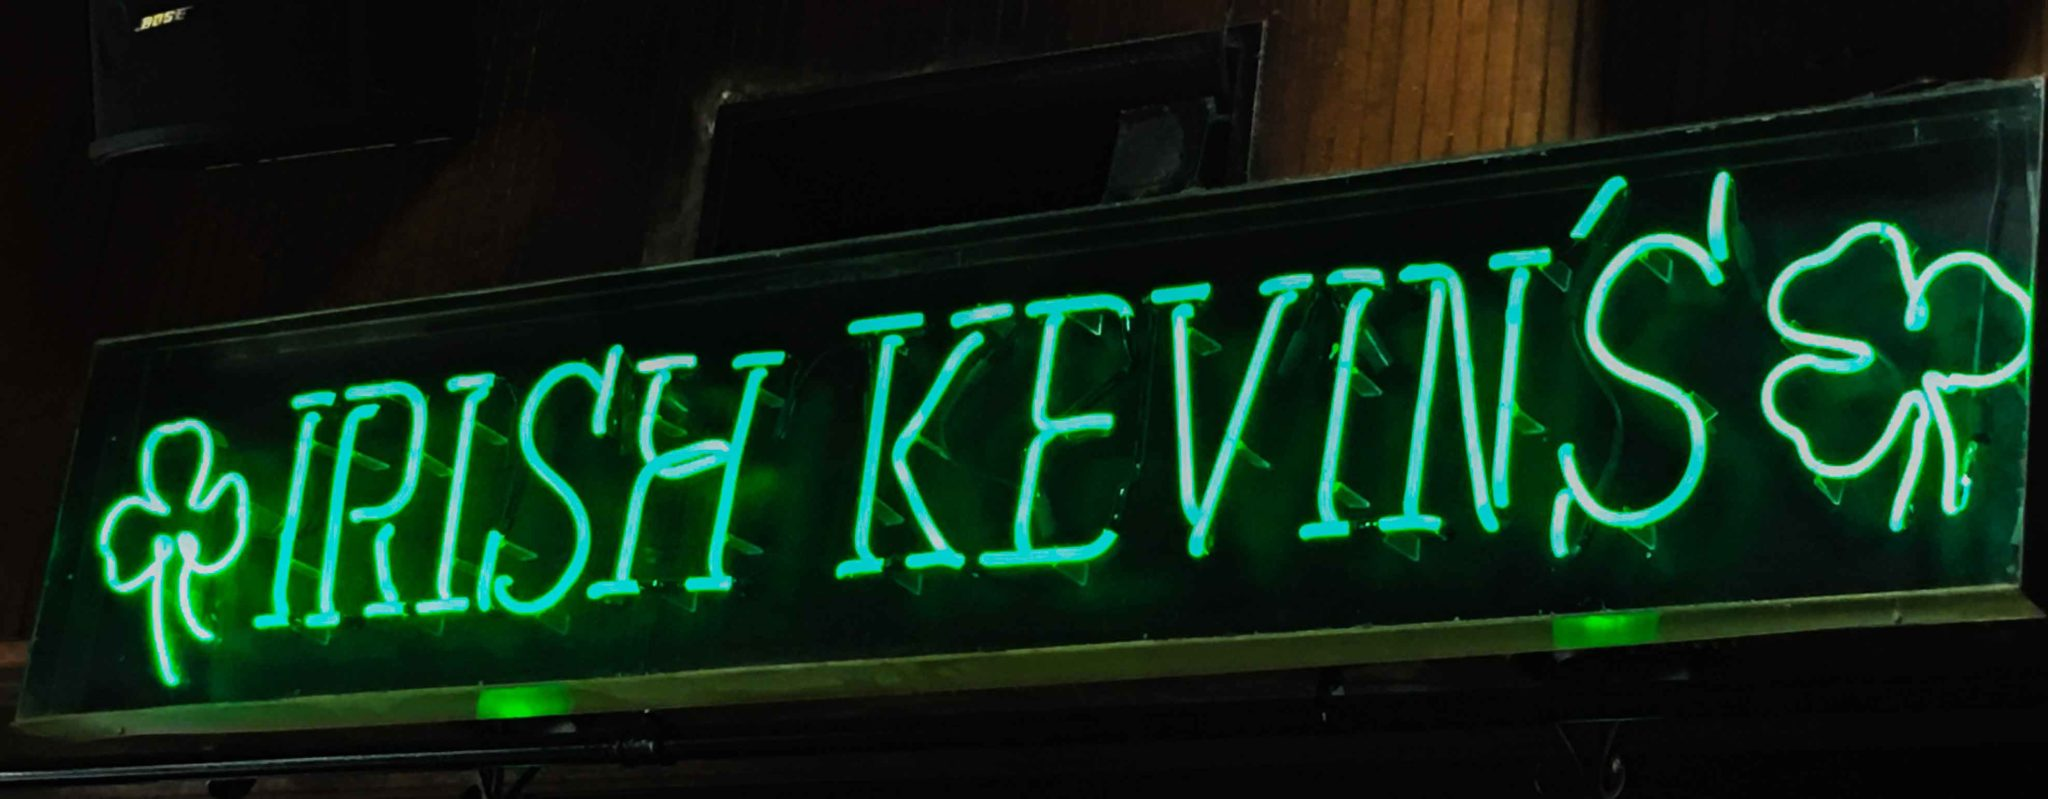 irish kevin's key west